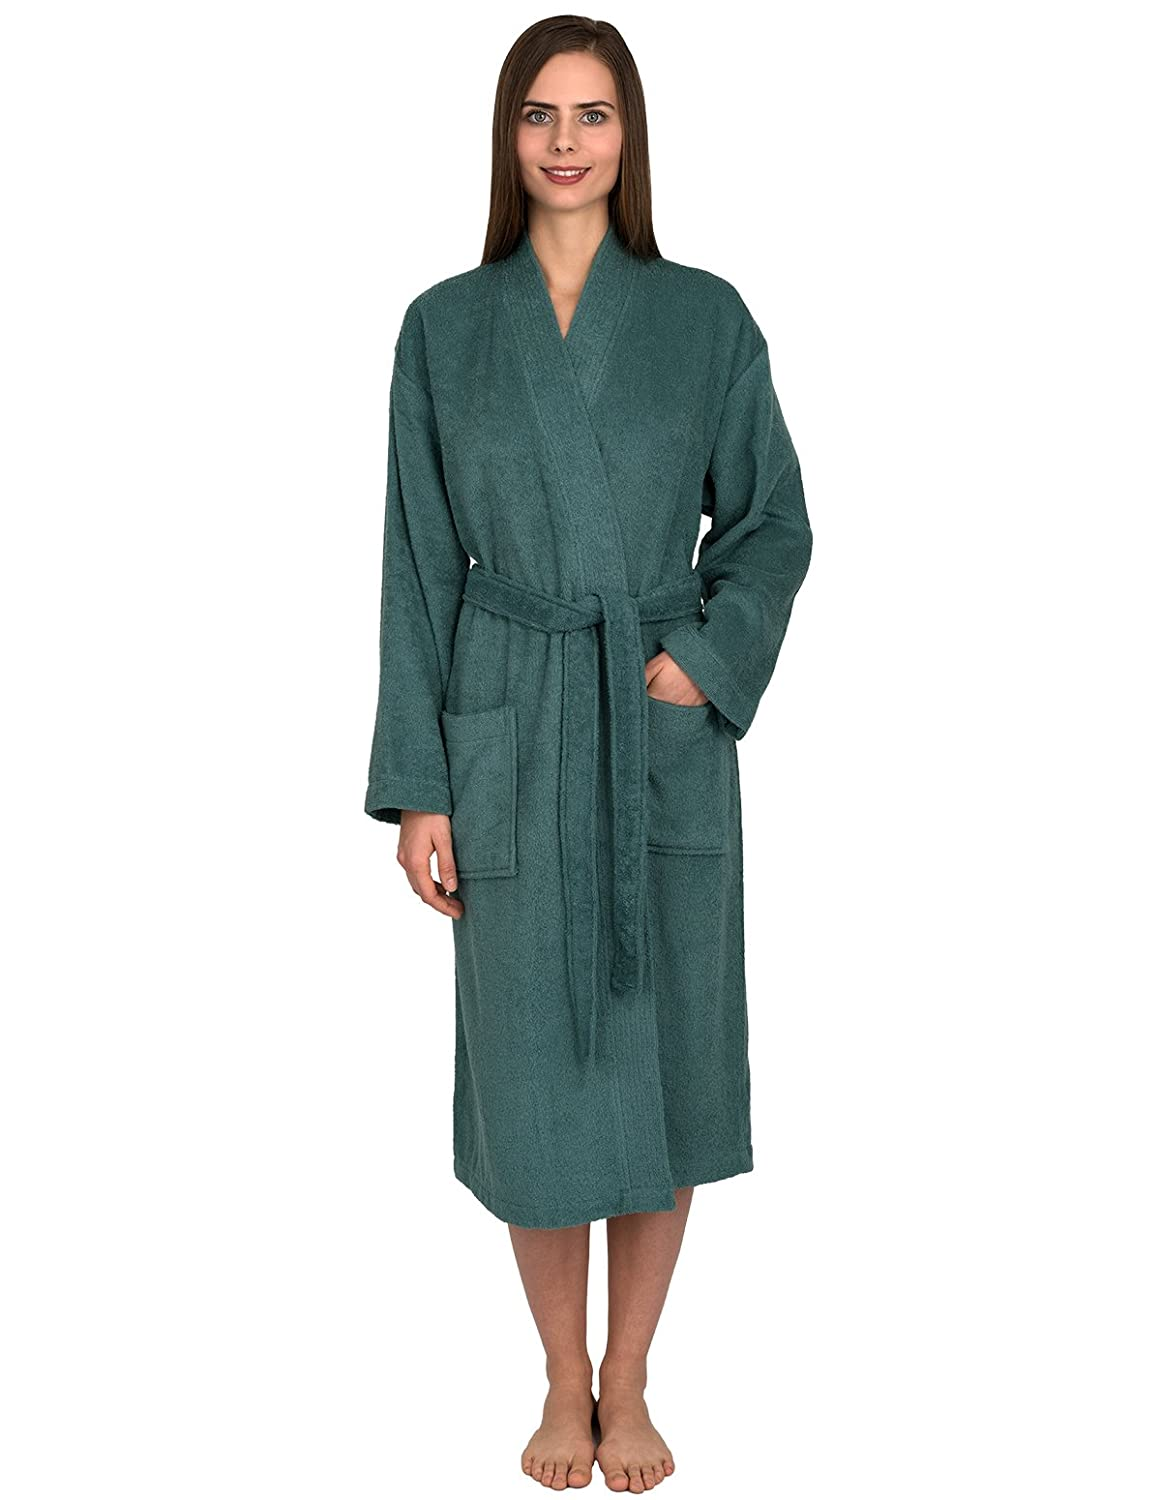 Deep sea TowelSelections Turkish Cotton Robe Kimono Collar Terry Bathrobe Made in Turkey